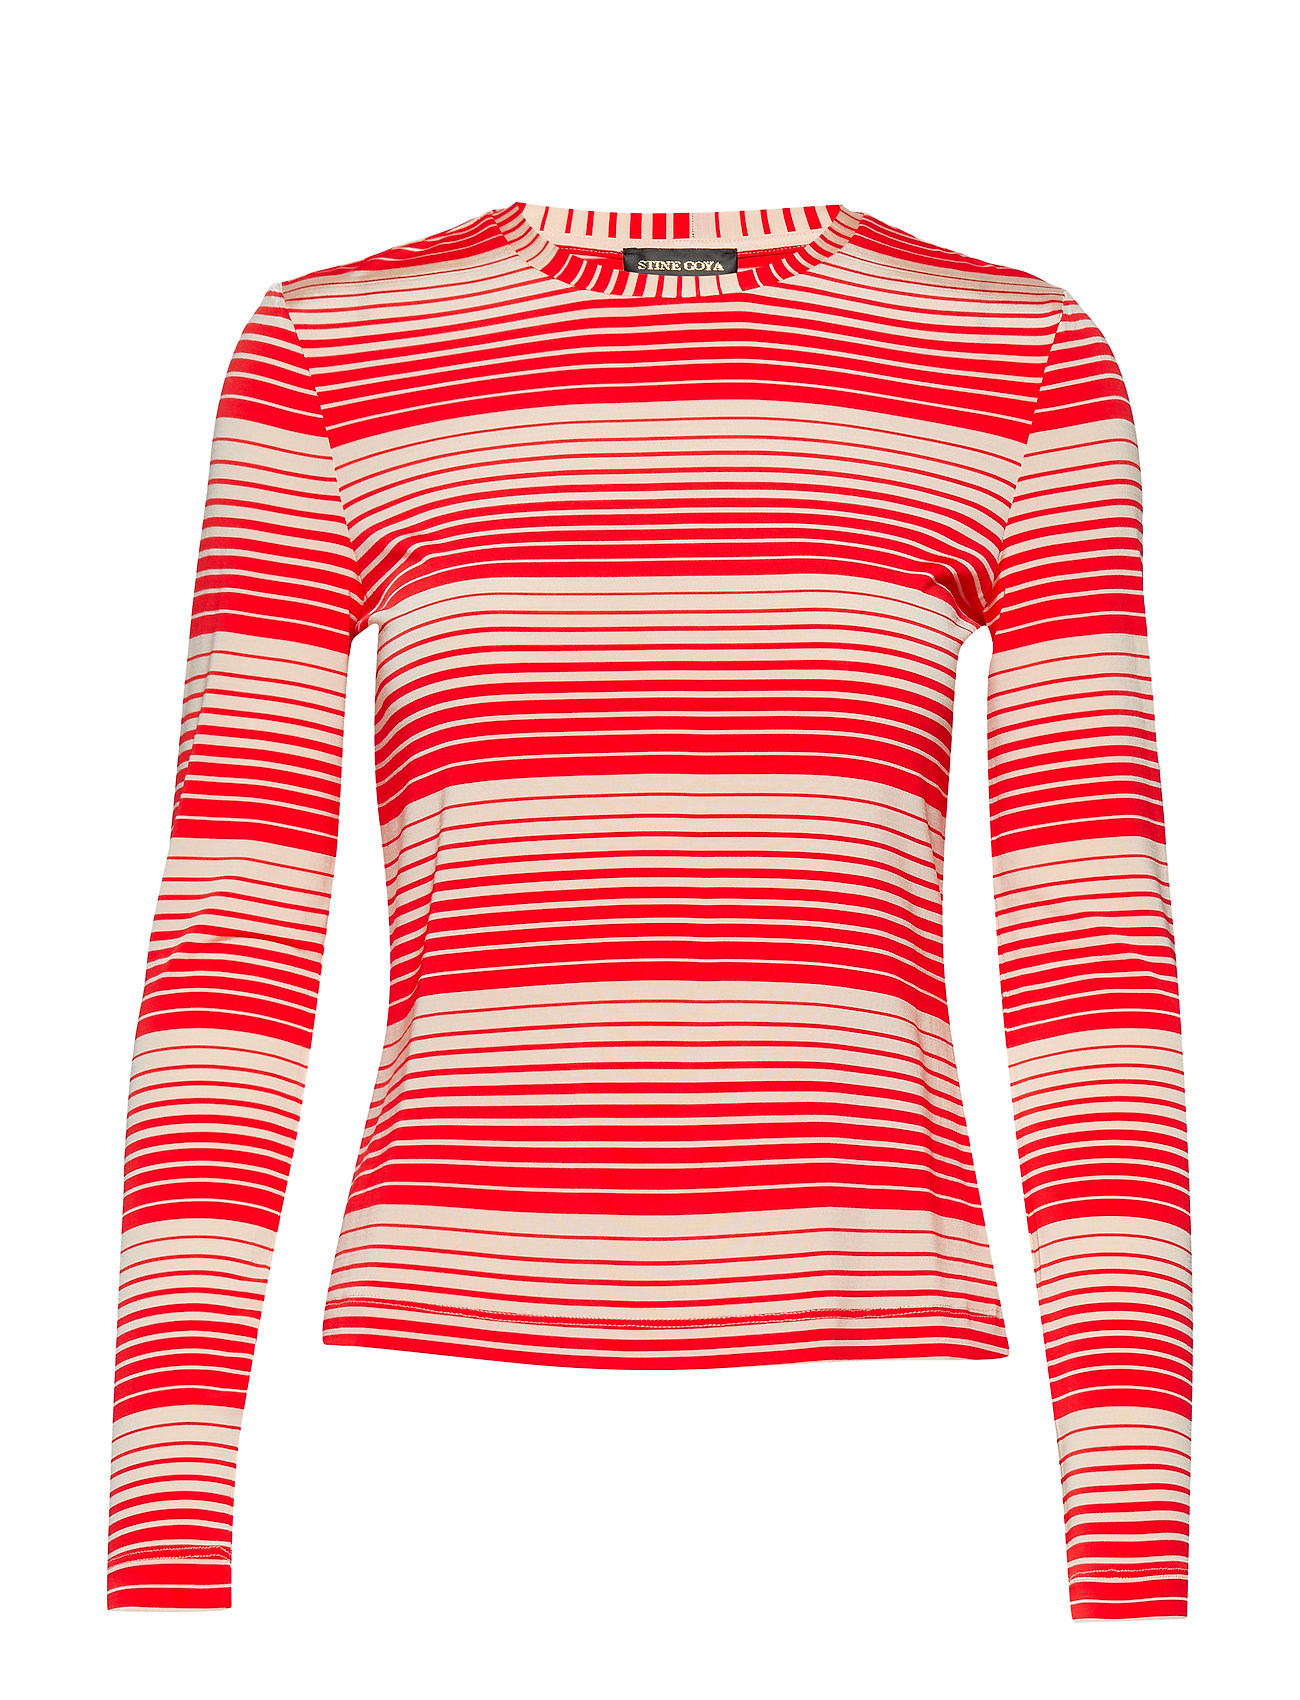 STINE GOYA Maya, 623 Light Jersey - STRIPES RED